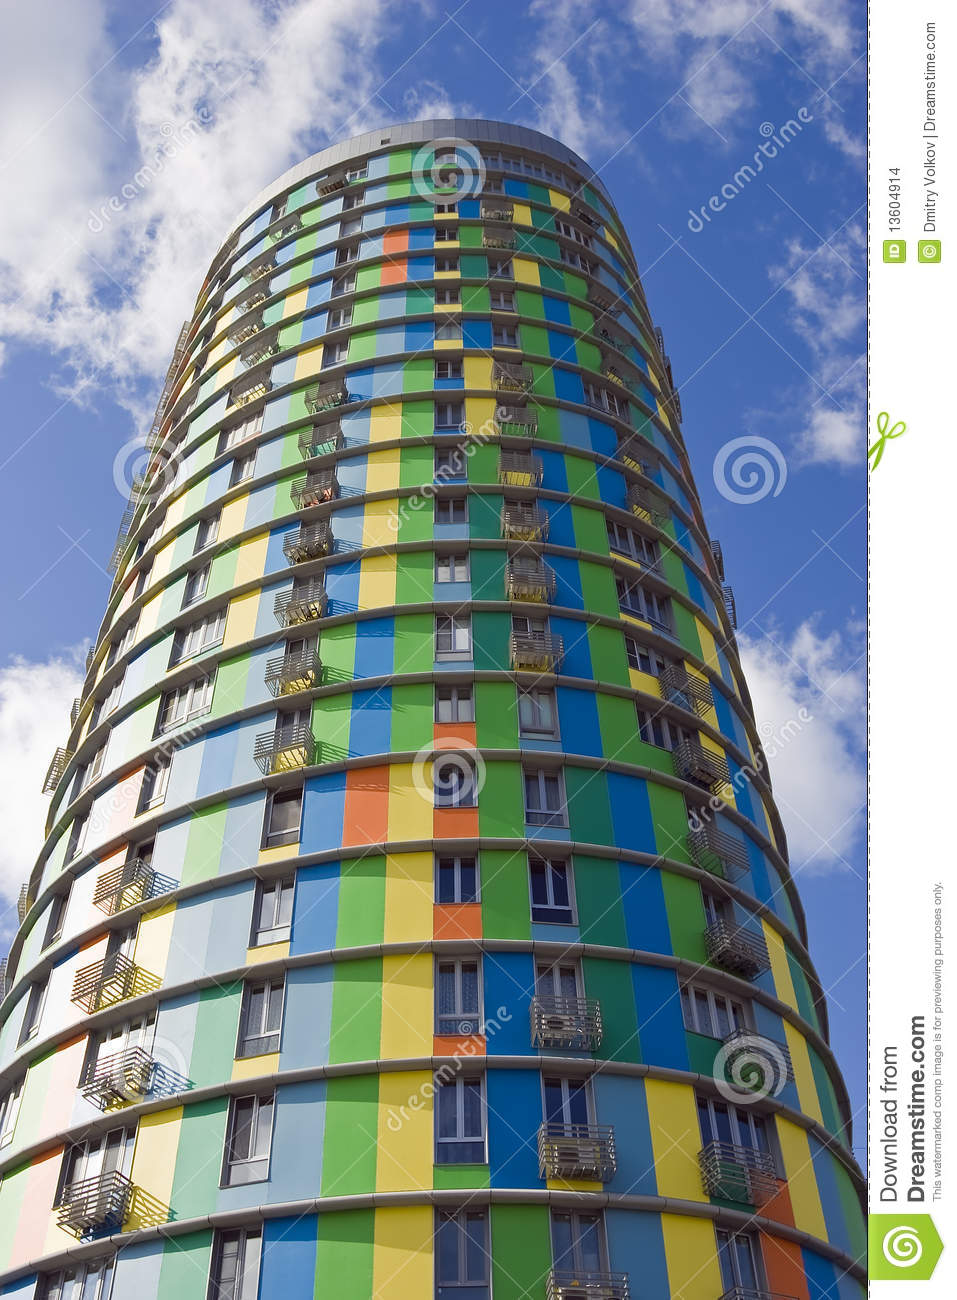 High cylindrical building